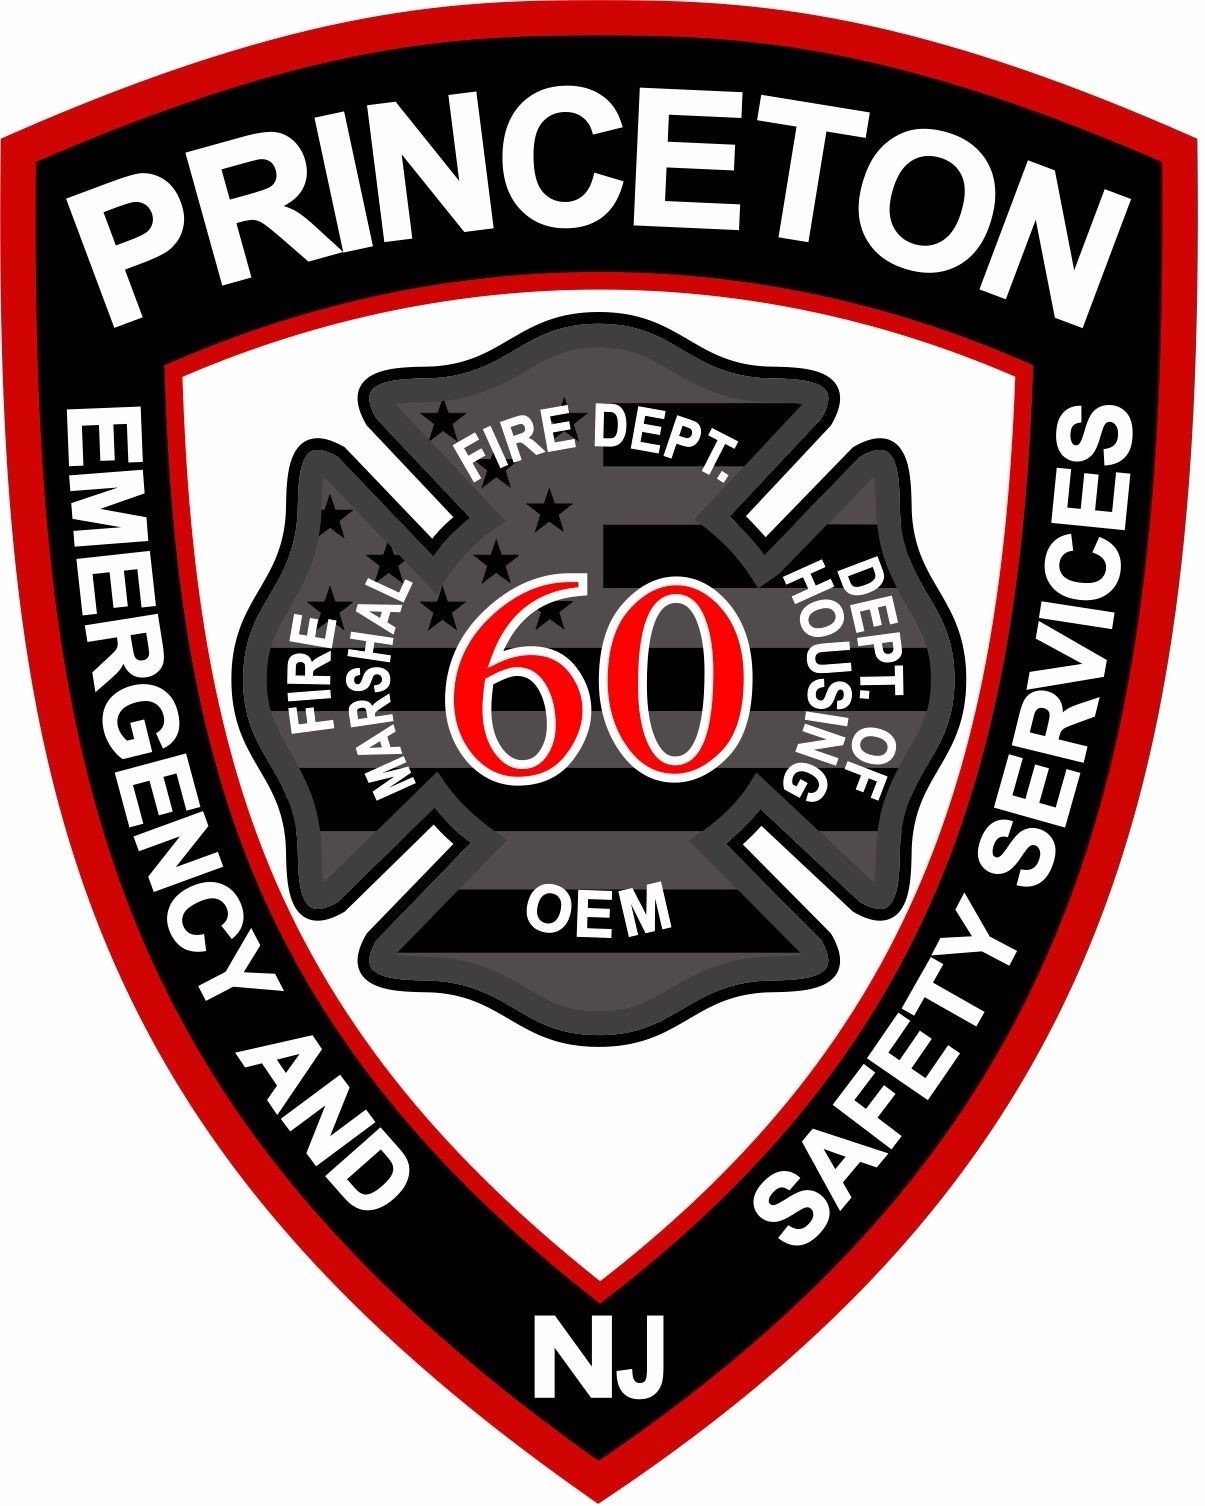 Princeton Department of Emergency & Safety Services Bureau of Fire Safety